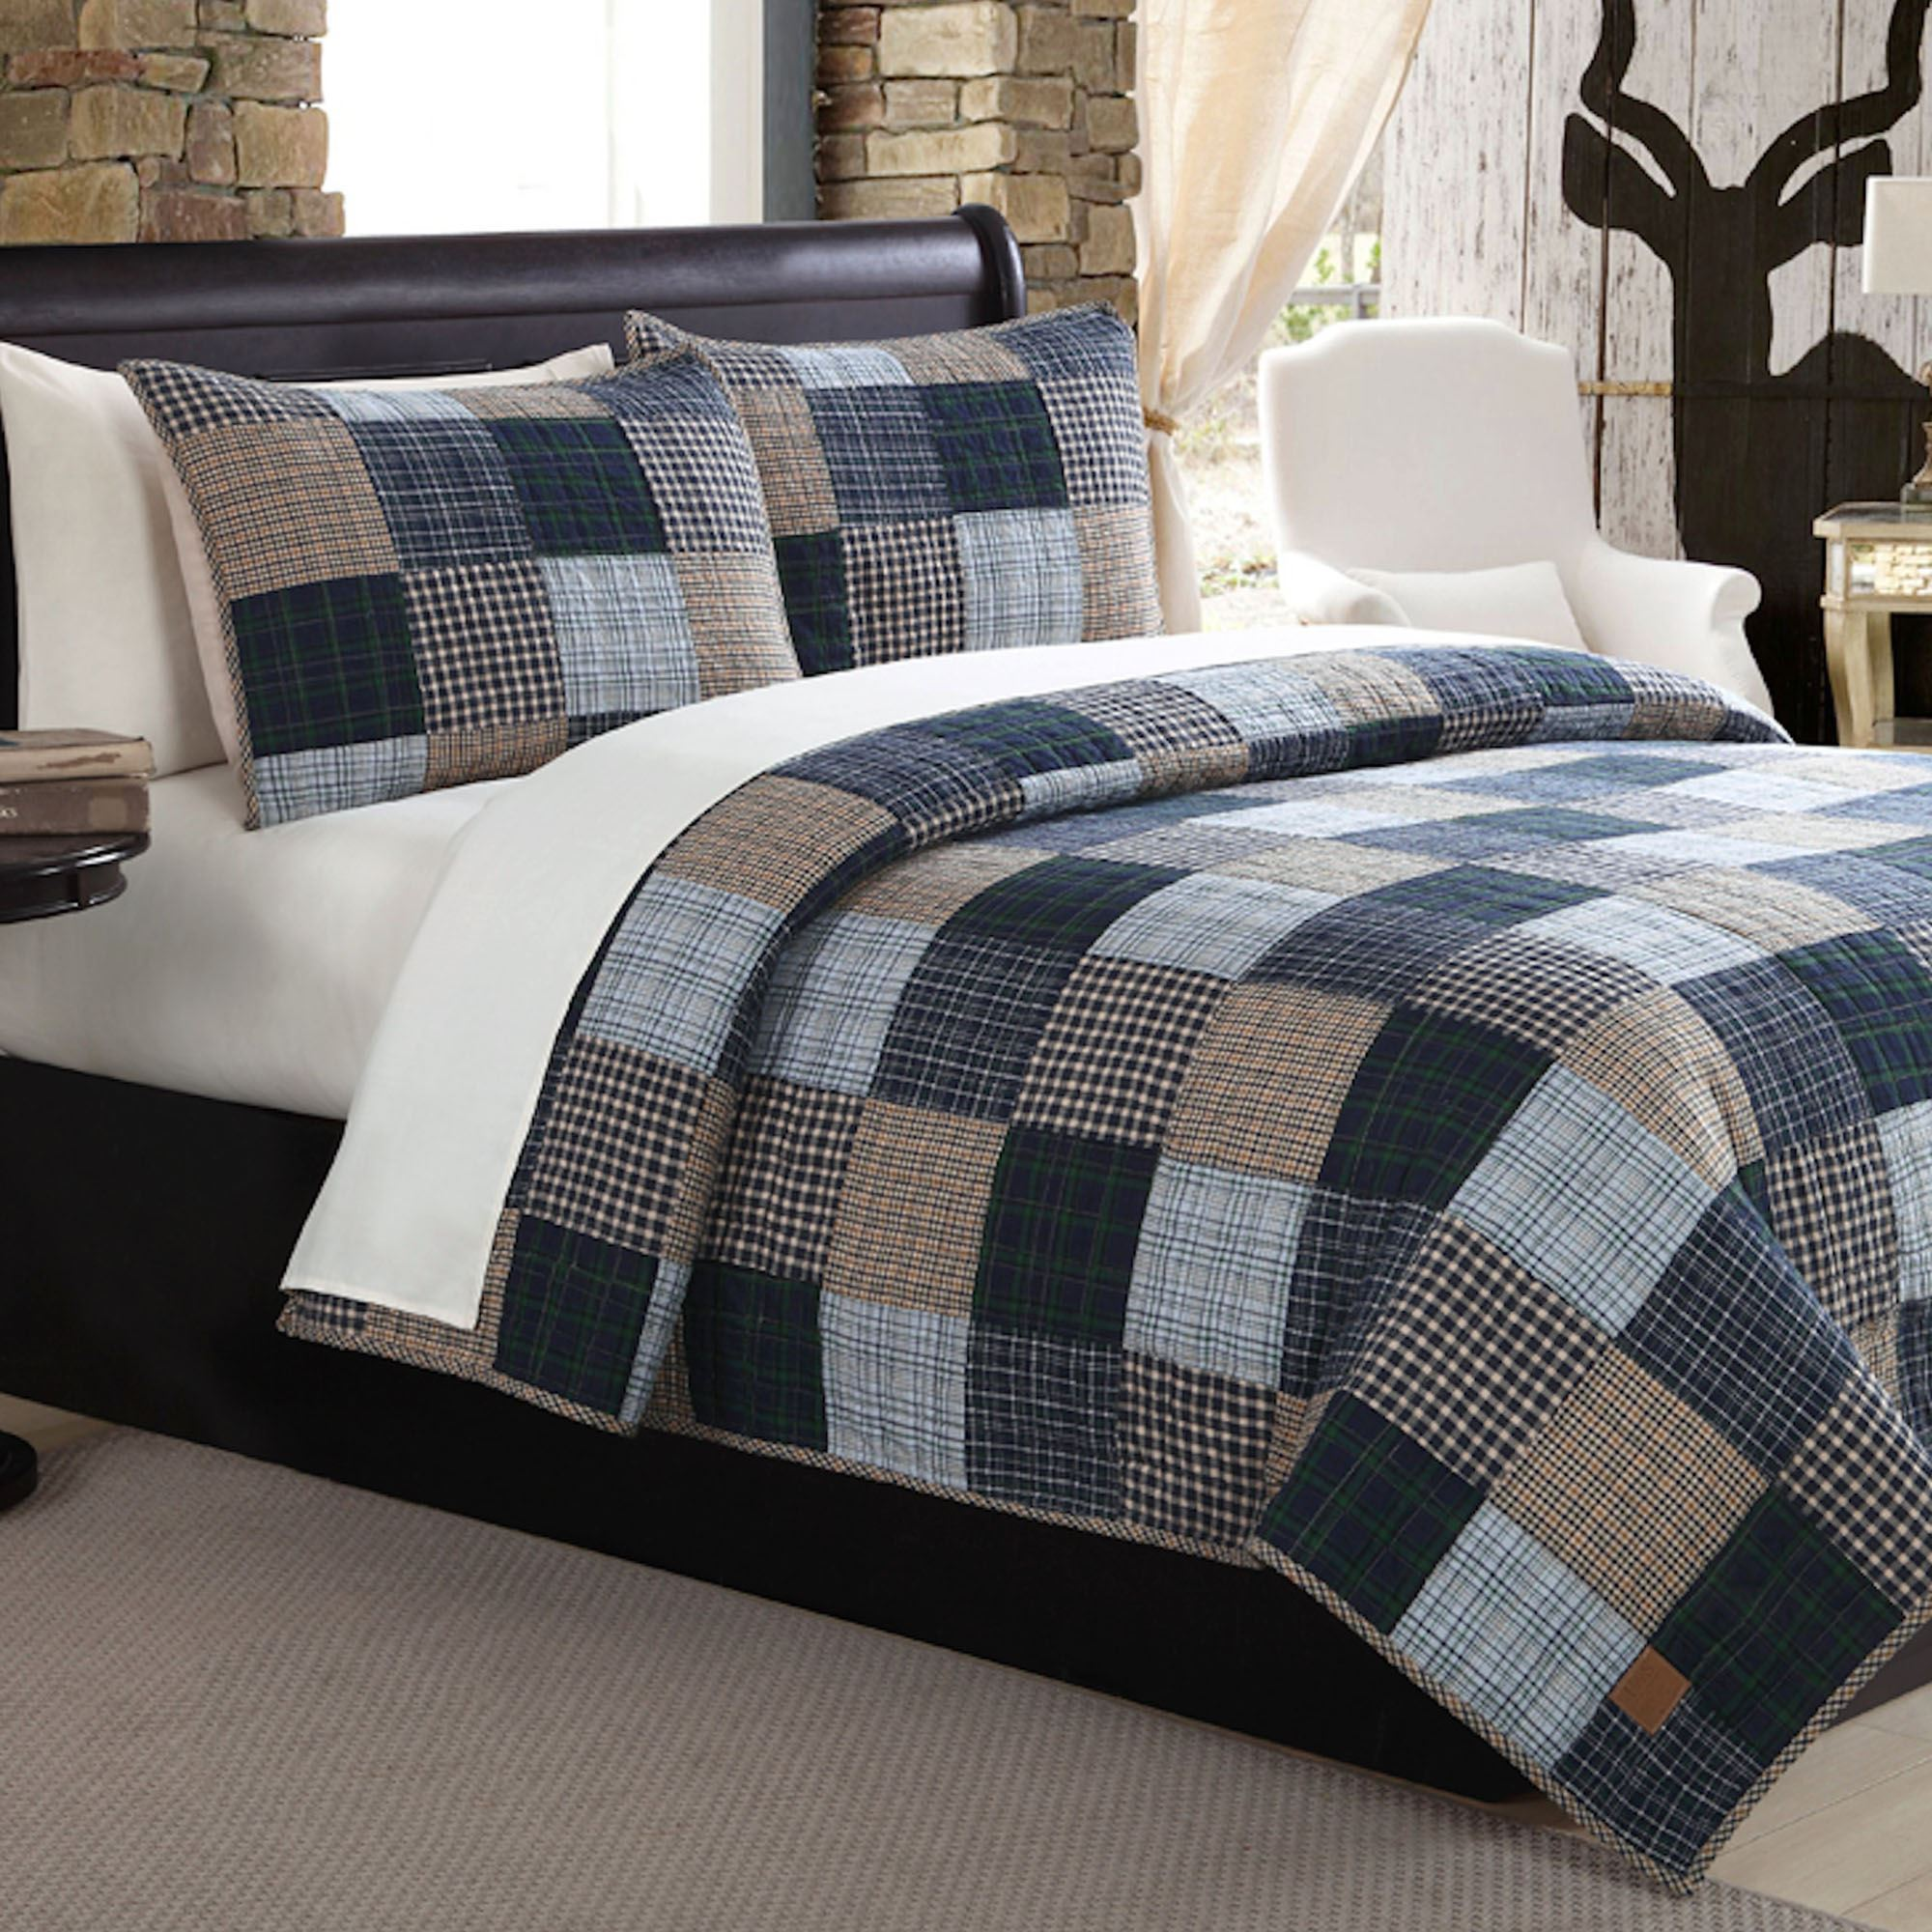 Ridgecrest Plaid Quilt Set : plaid comforters and quilts - Adamdwight.com